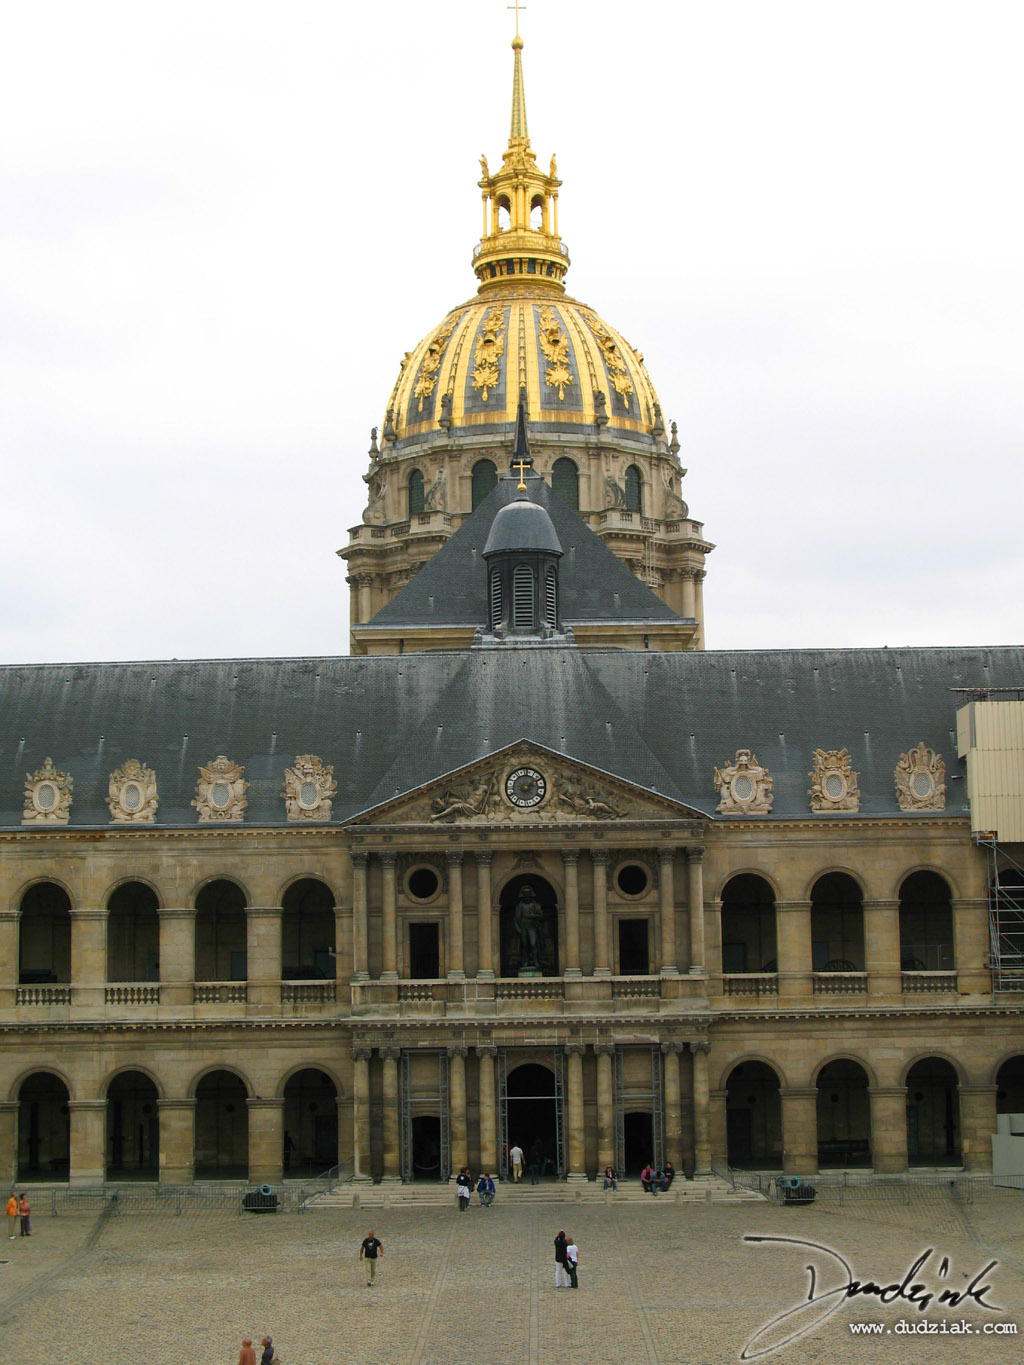 Paris France,  courtyard,  Les Invalides,  Military Museum